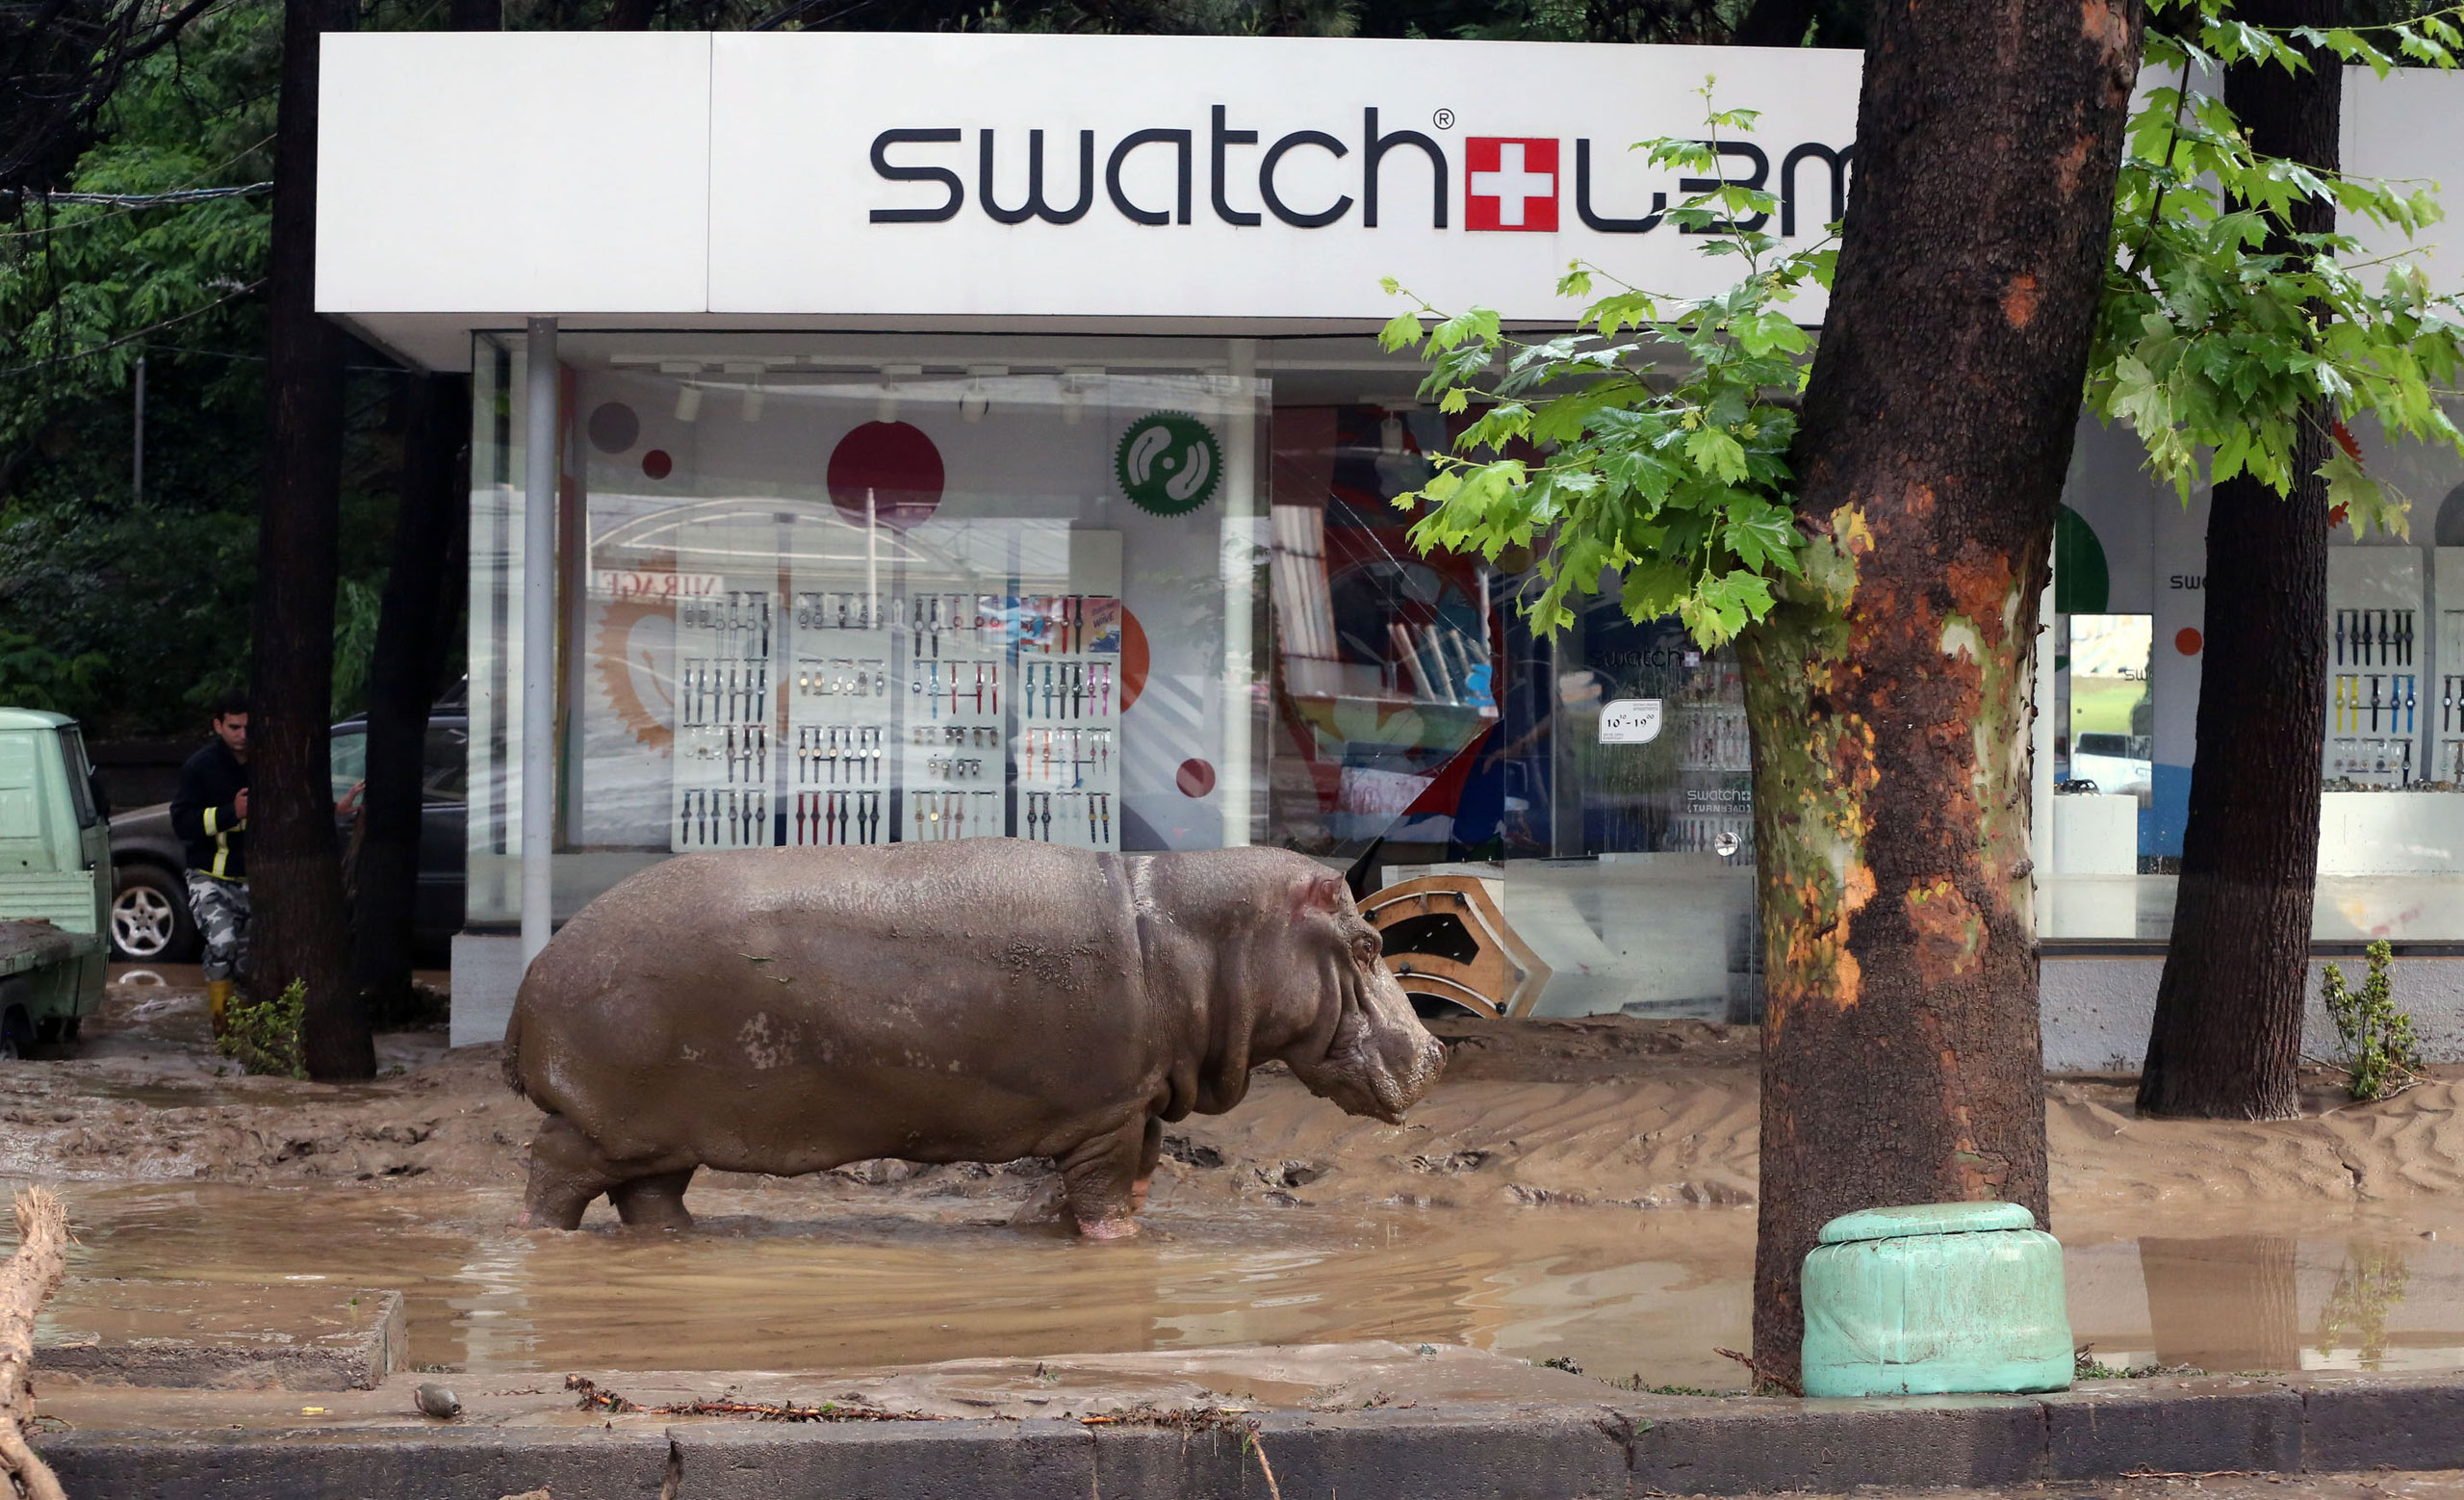 A hippopotamus stands in the mud in front of a Swatch watch kiosk after it escaped from a flooded zoo in Tbilisi, Georgia, June 14, 2015.